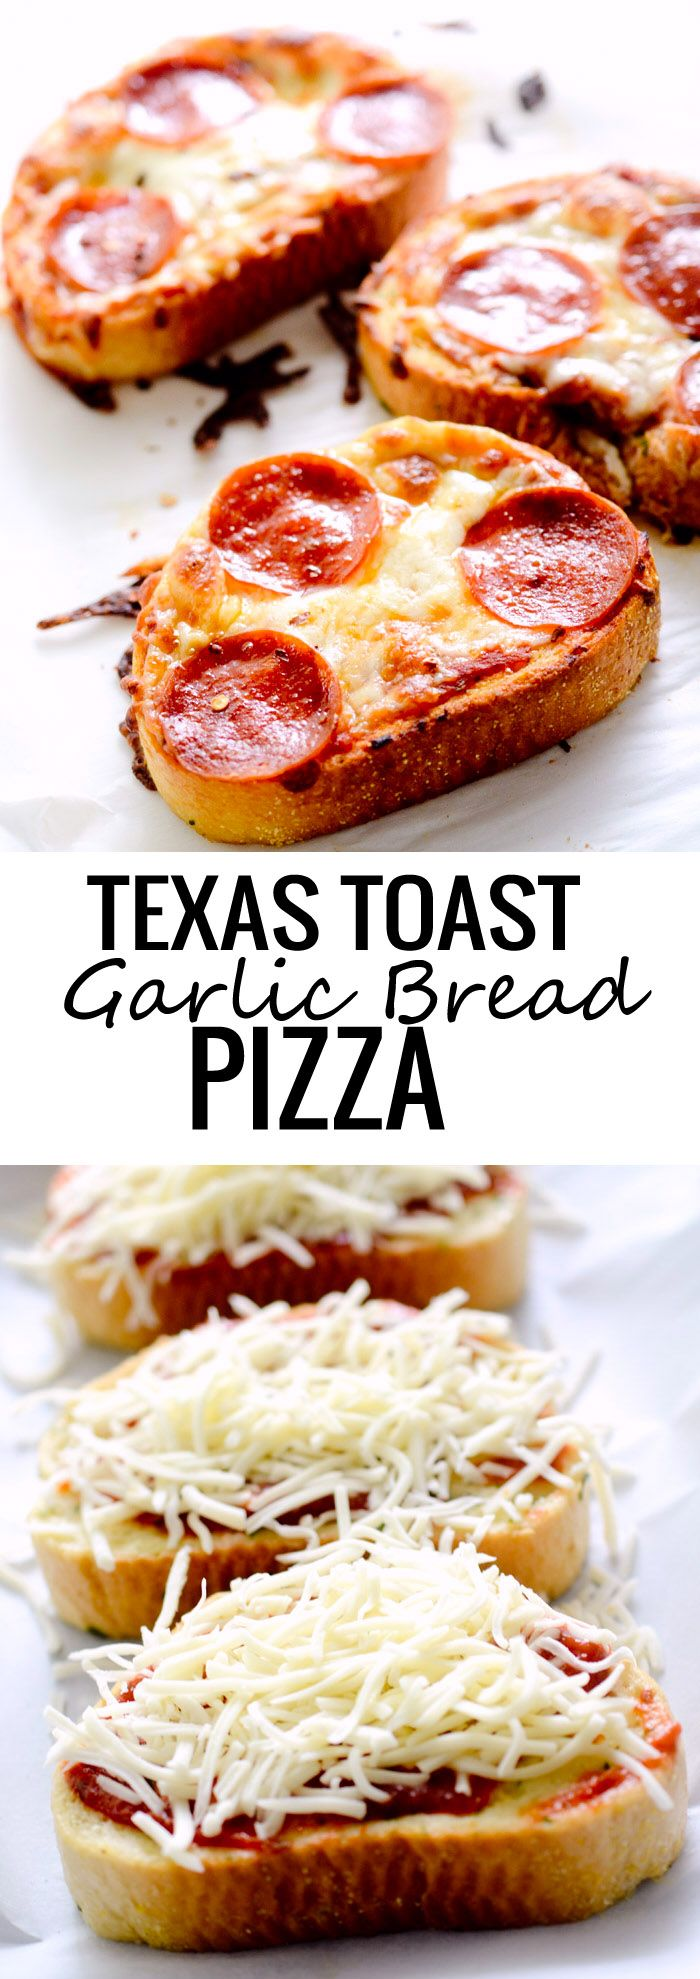 Texas Toast Garlic Bread Pizza - Recipe Diaries: